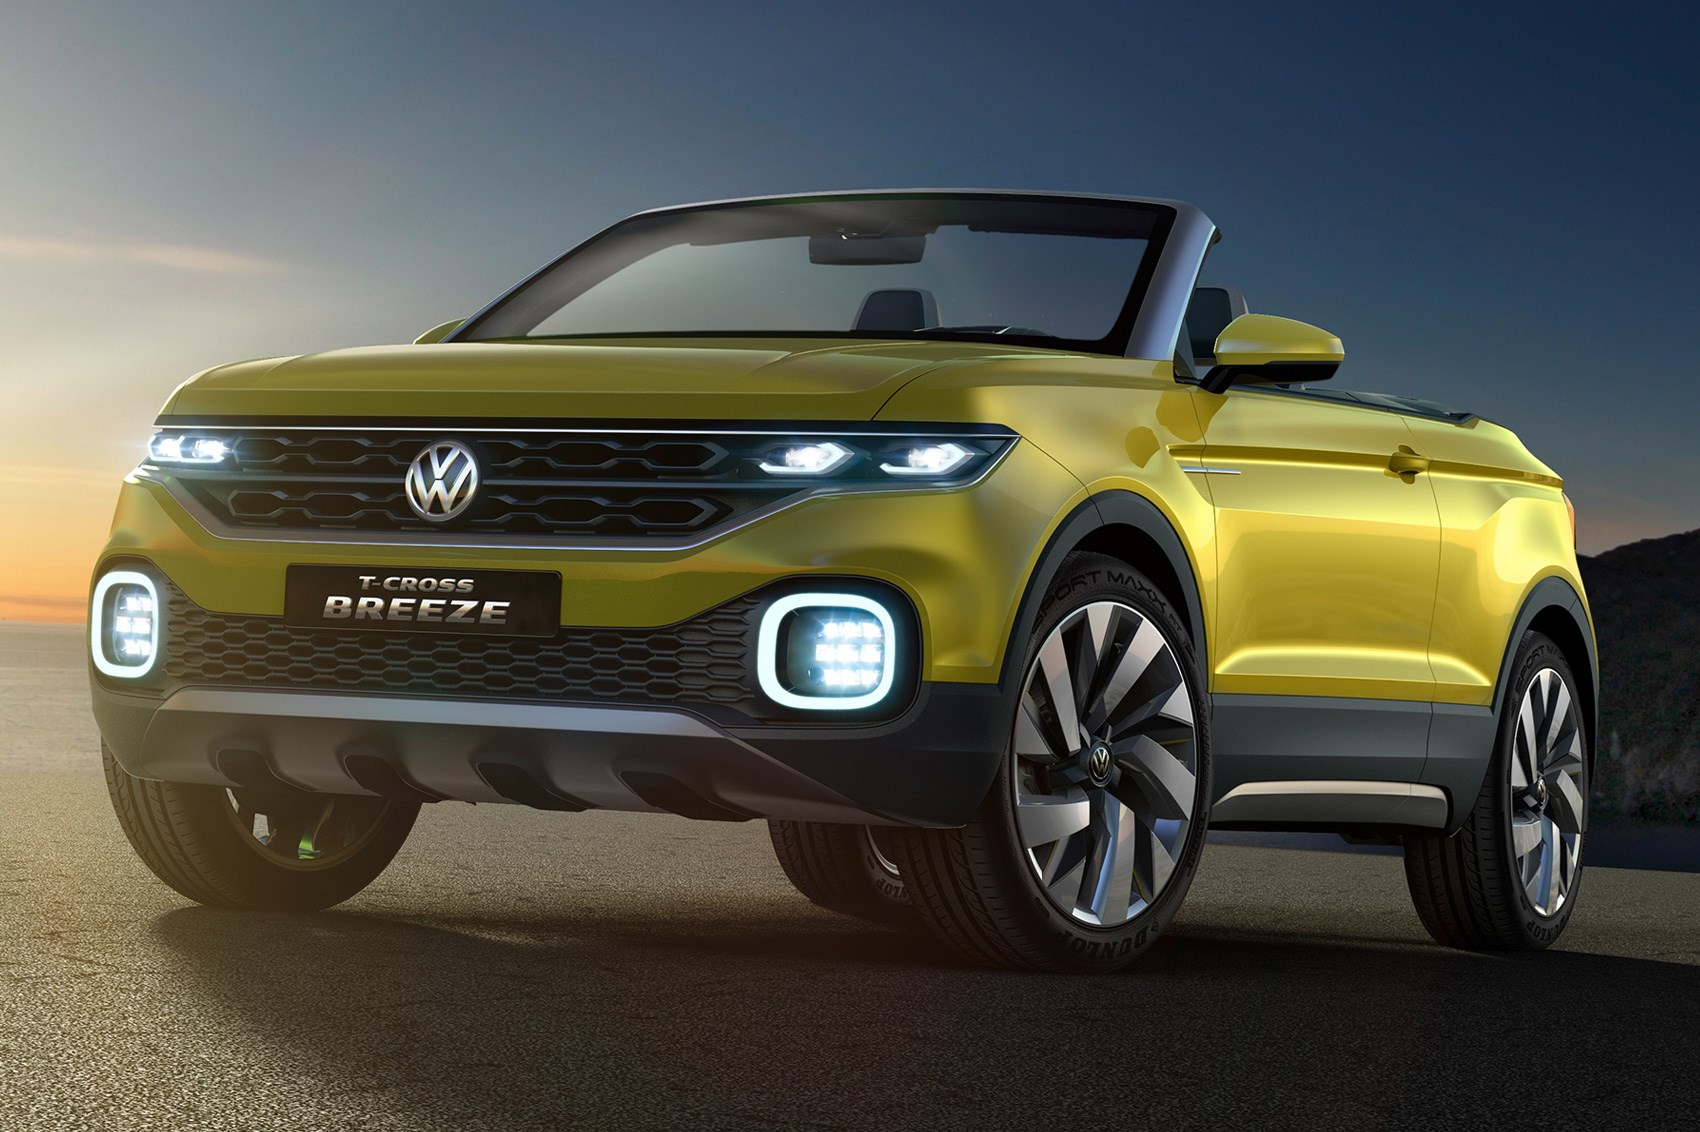 Volkswagen T Cross Breeze Concept The Compact Evoque